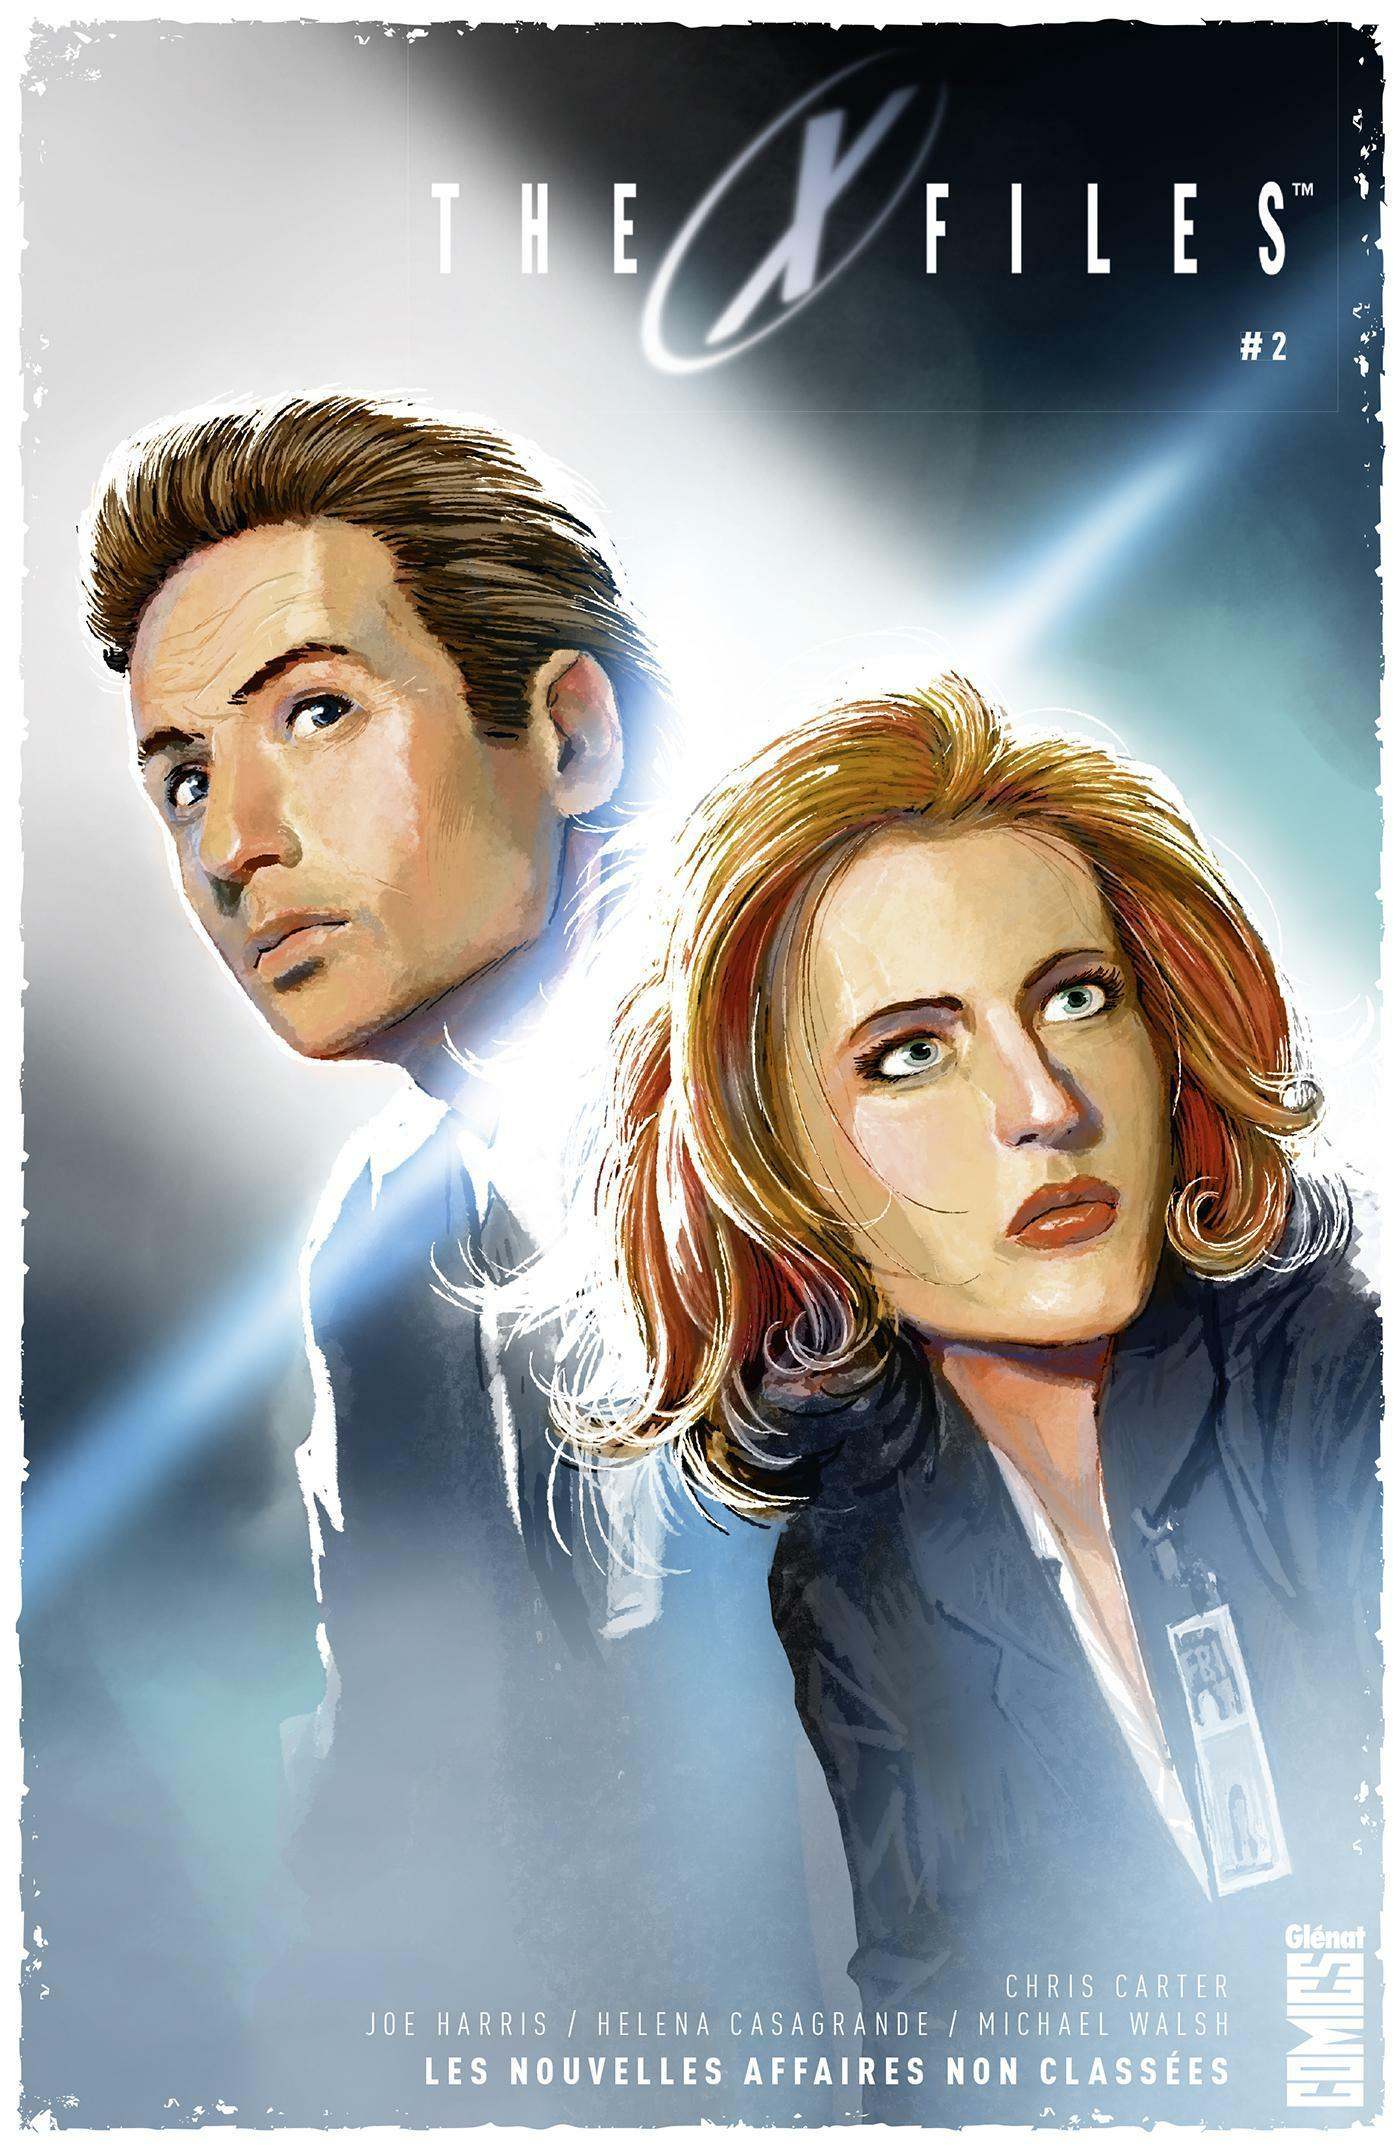 The X-files ; les nouvelles affaires non classées t.2  - Joe Harris  - Michael Walsh  - Elena Casagrande